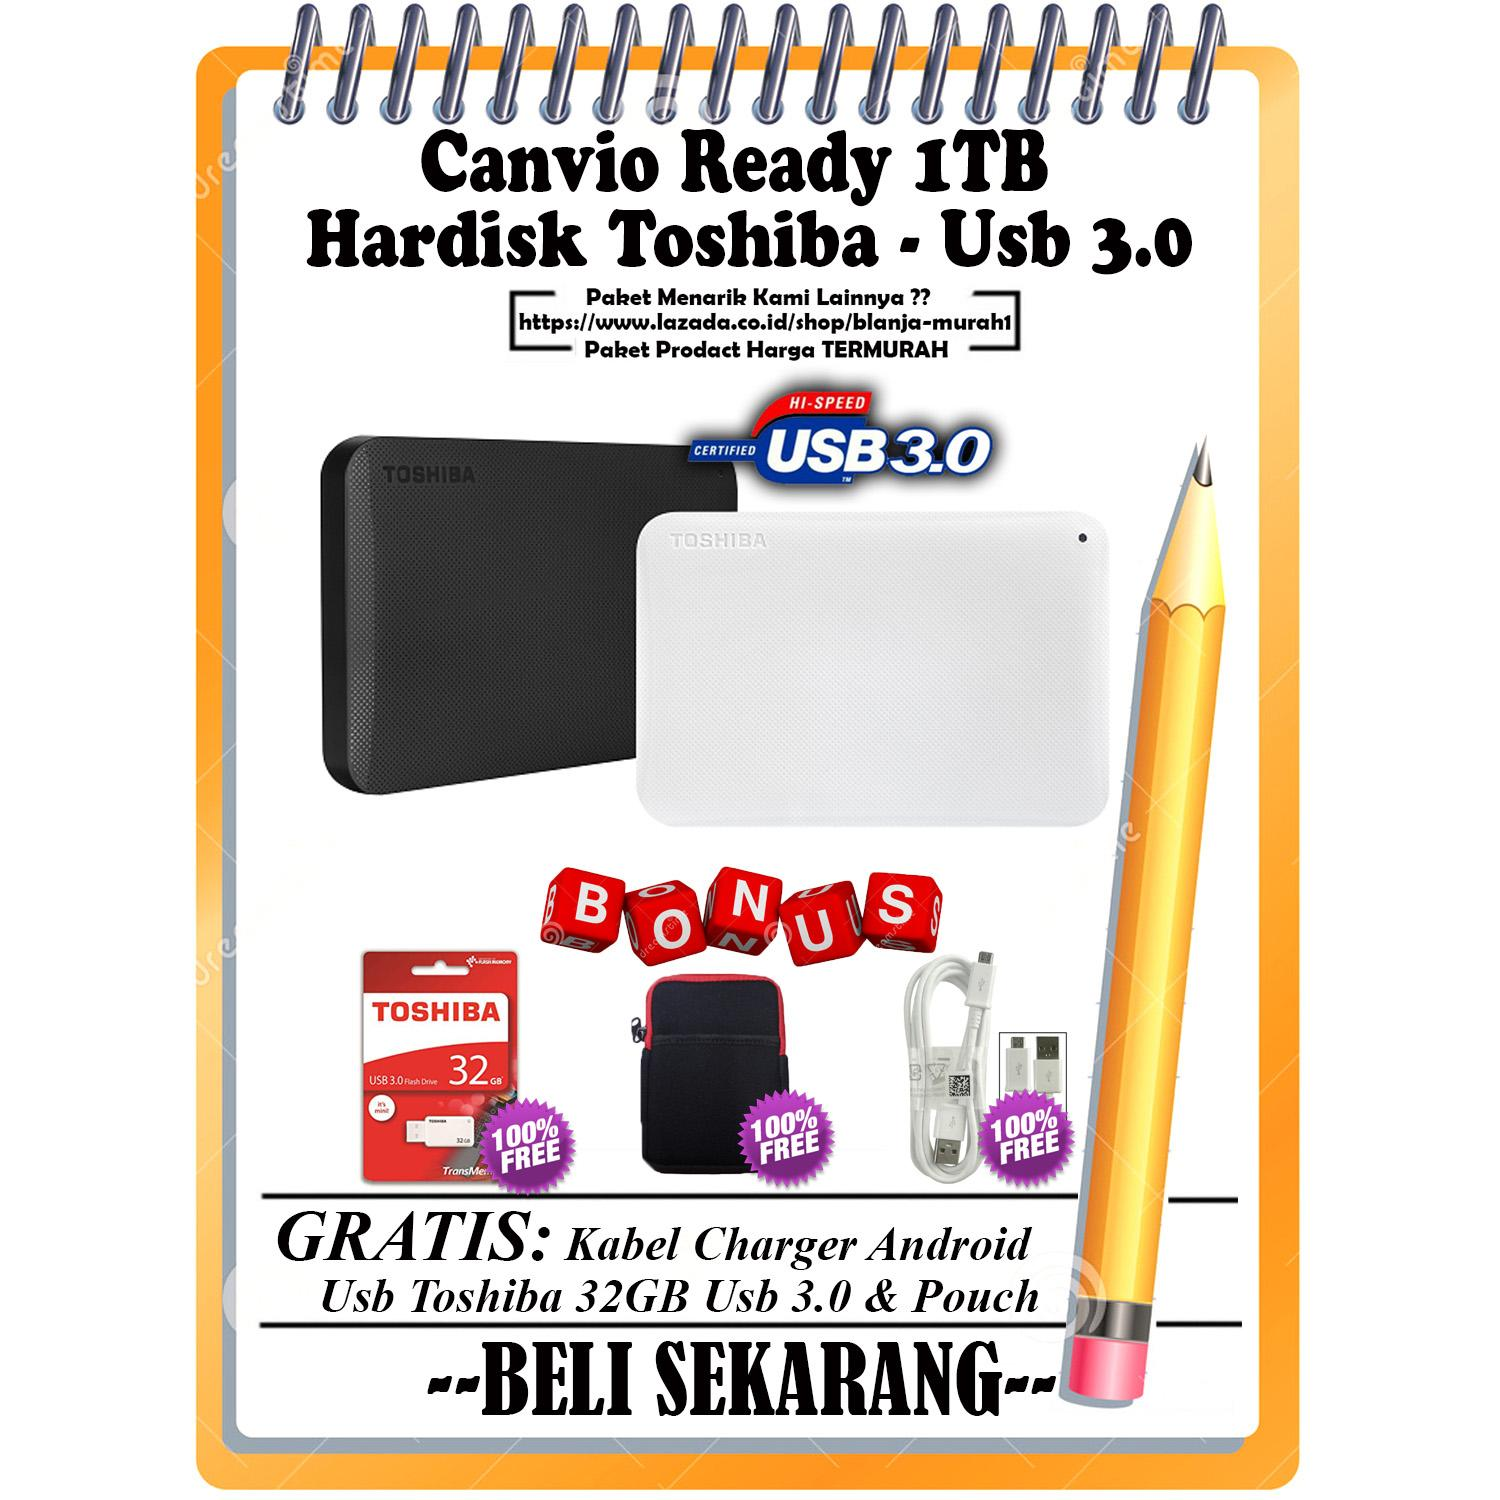 Toshiba Canvio Ready 1TB - HDD / HD / Hardisk Eksternal - Hitam GRATIS Usb TOSHIBA 32GB Usb 3.0 + Pouch Harddisk & Kabel Charger Android